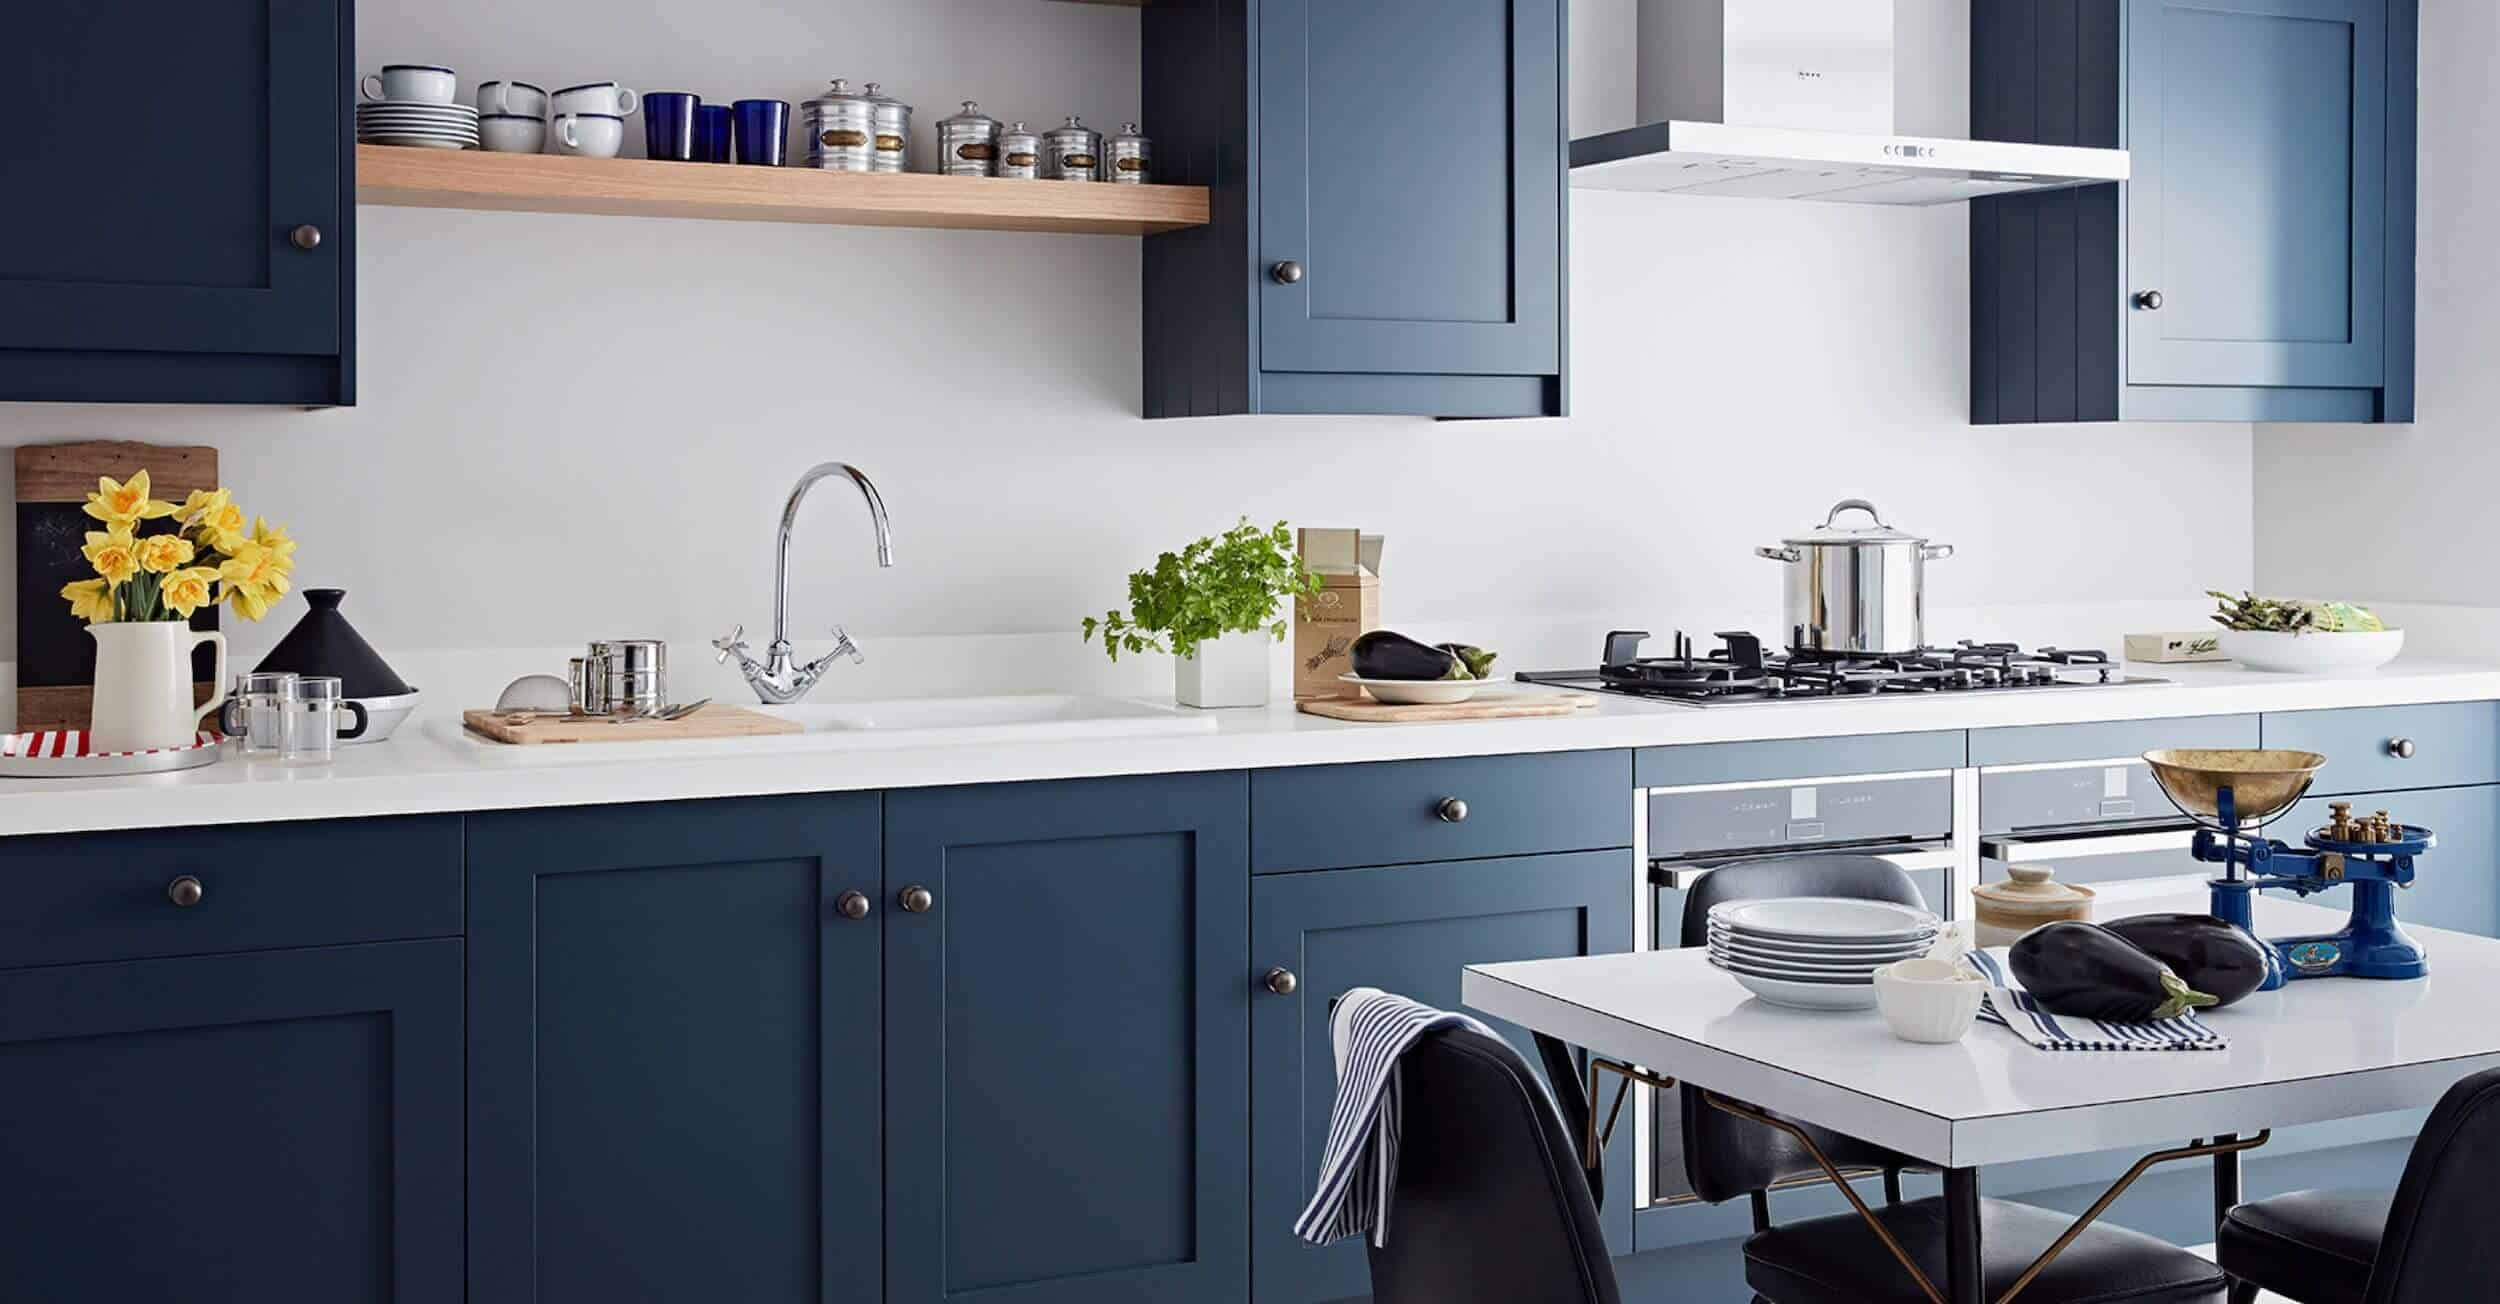 Kitchens Bedrooms Furniture John Lewis Of Hungerford